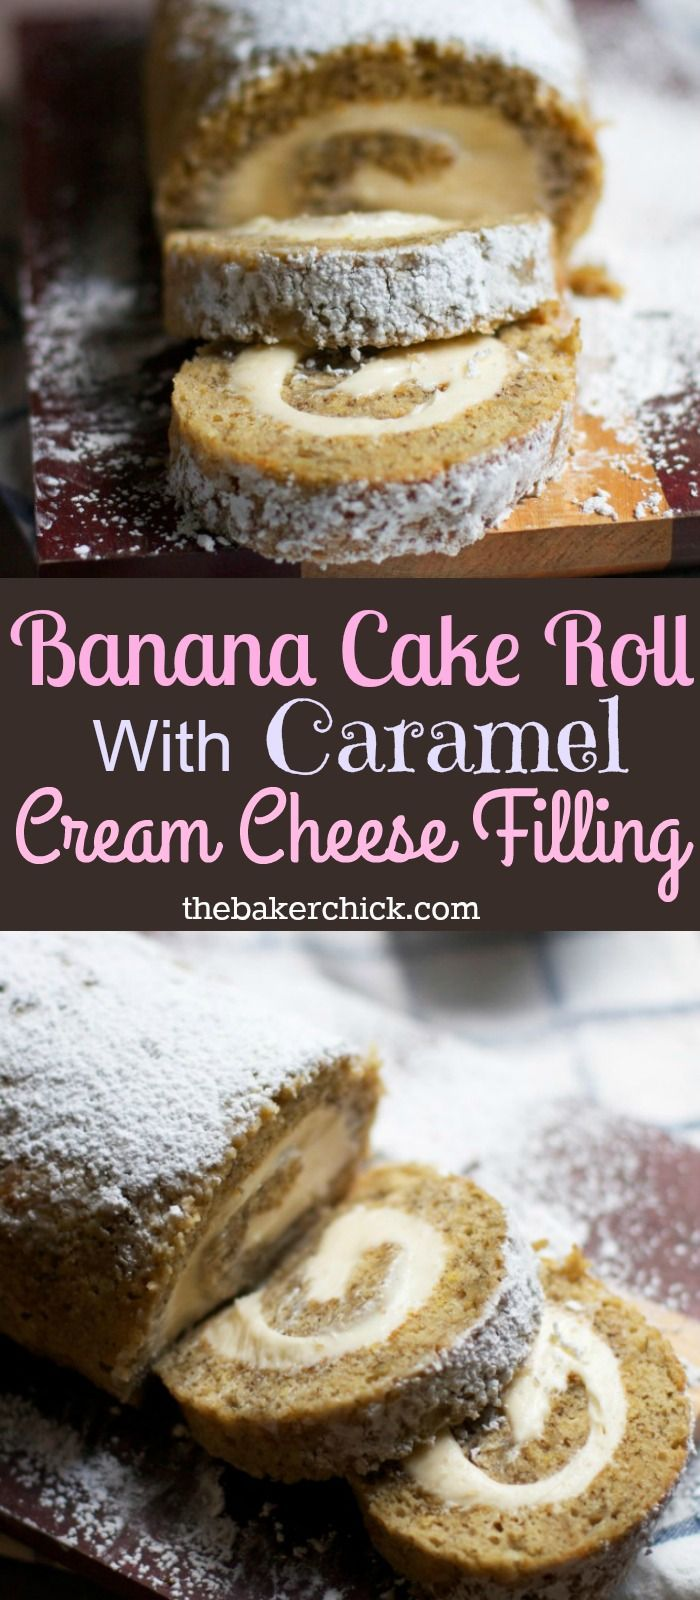 Banana Cake Roll With Caramel Cream Cheese Filling